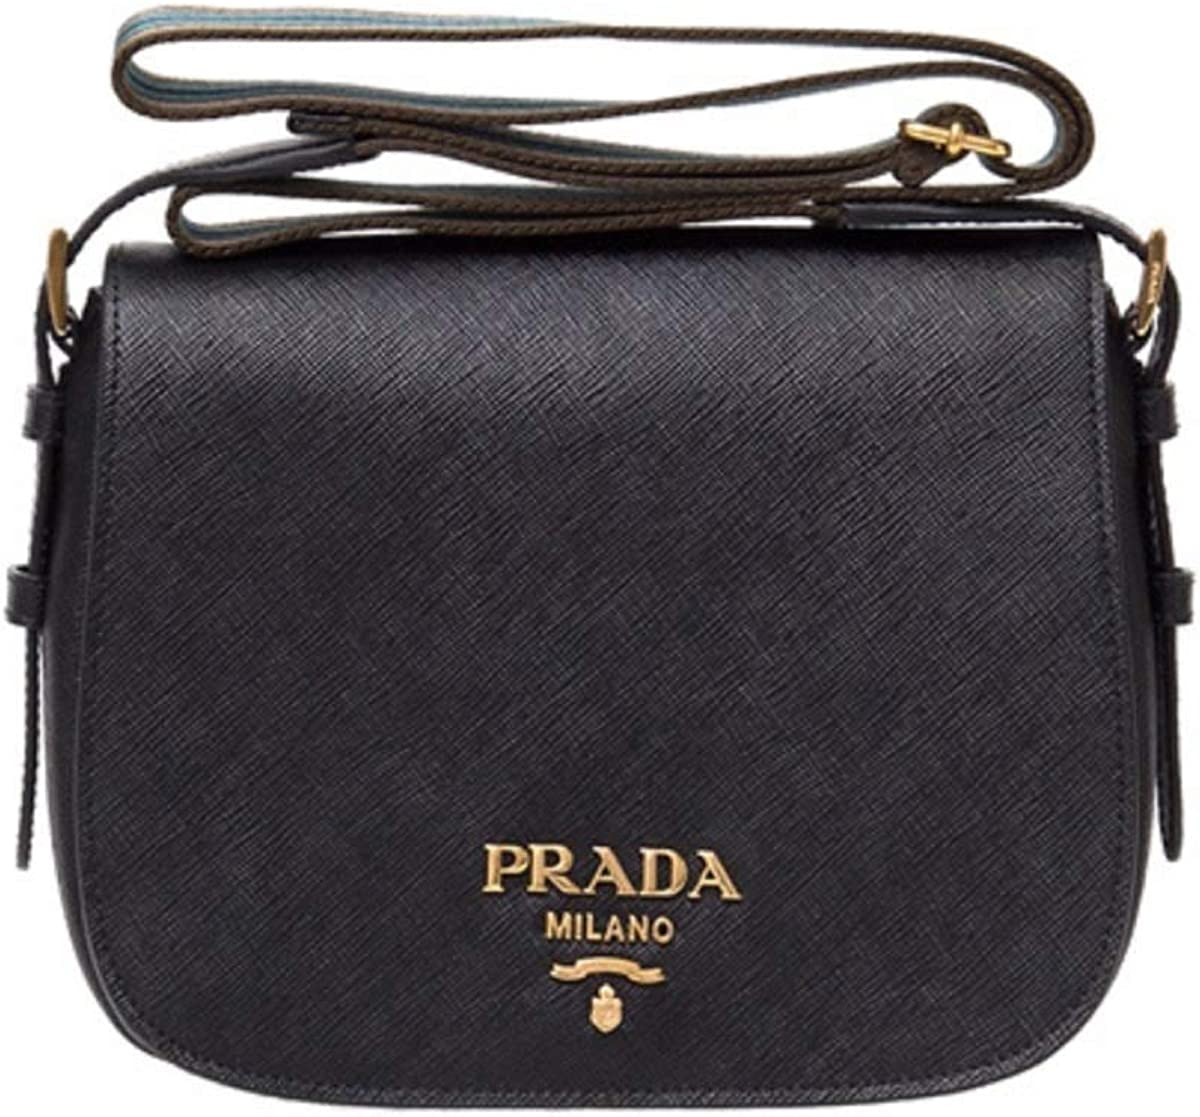 Prada Women Saffiano Leather Web Strap Cross Body Shoulder Bag Black 1BD192